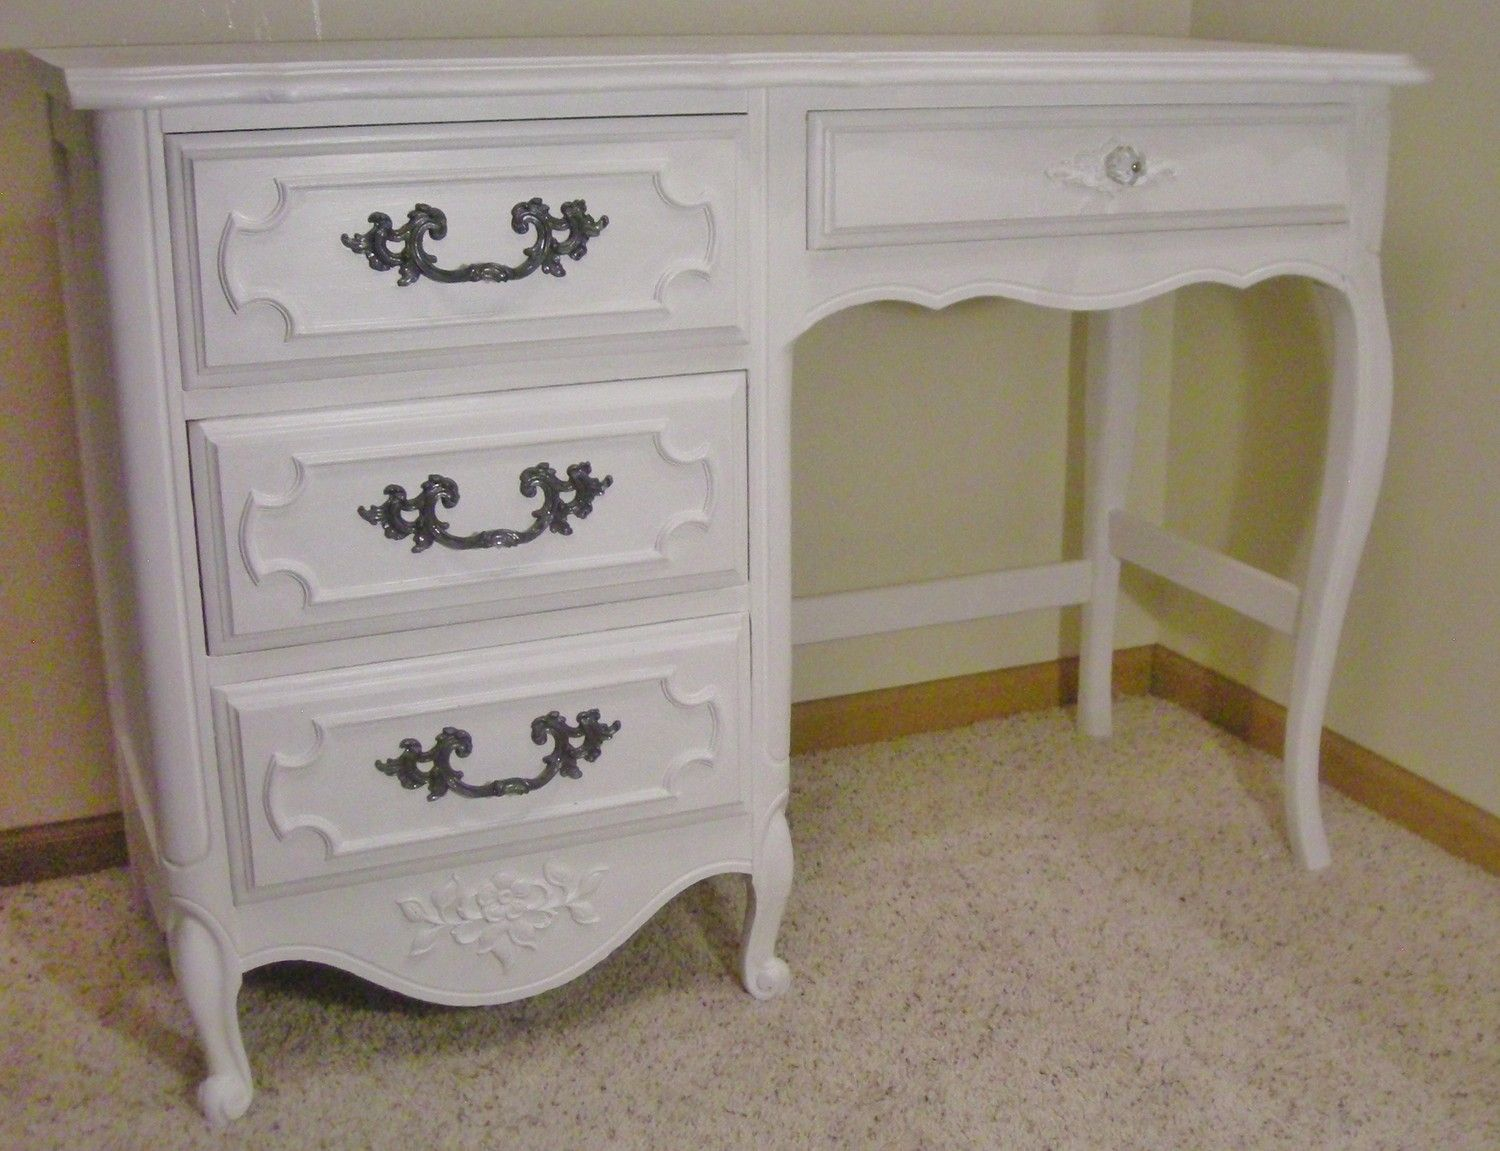 White French Provincial Desk, French Provincial Desk - Gamesfreez.com - White French Provincial Desk, French Provincial Desk - Gamesfreez